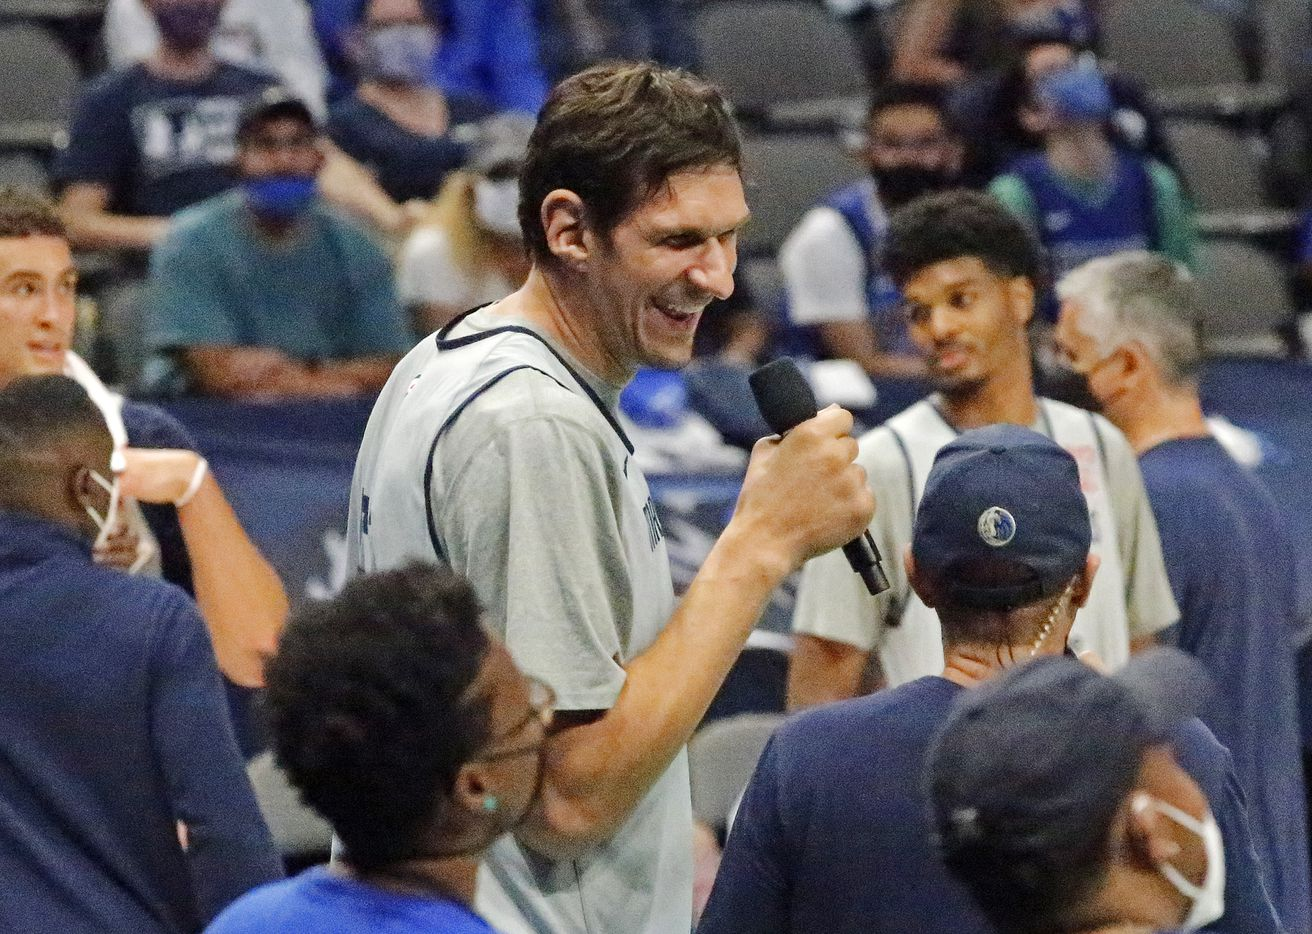 Dallas Mavericks center Boban Marjanovic (51) gives an interview as the Dallas Mavericks held their Mavs Fam Jam, a scrimmage free to the public at the American Airlines Center in Dallas on Sunday, October 3, 2021. (Stewart F. House/Special Contributor)